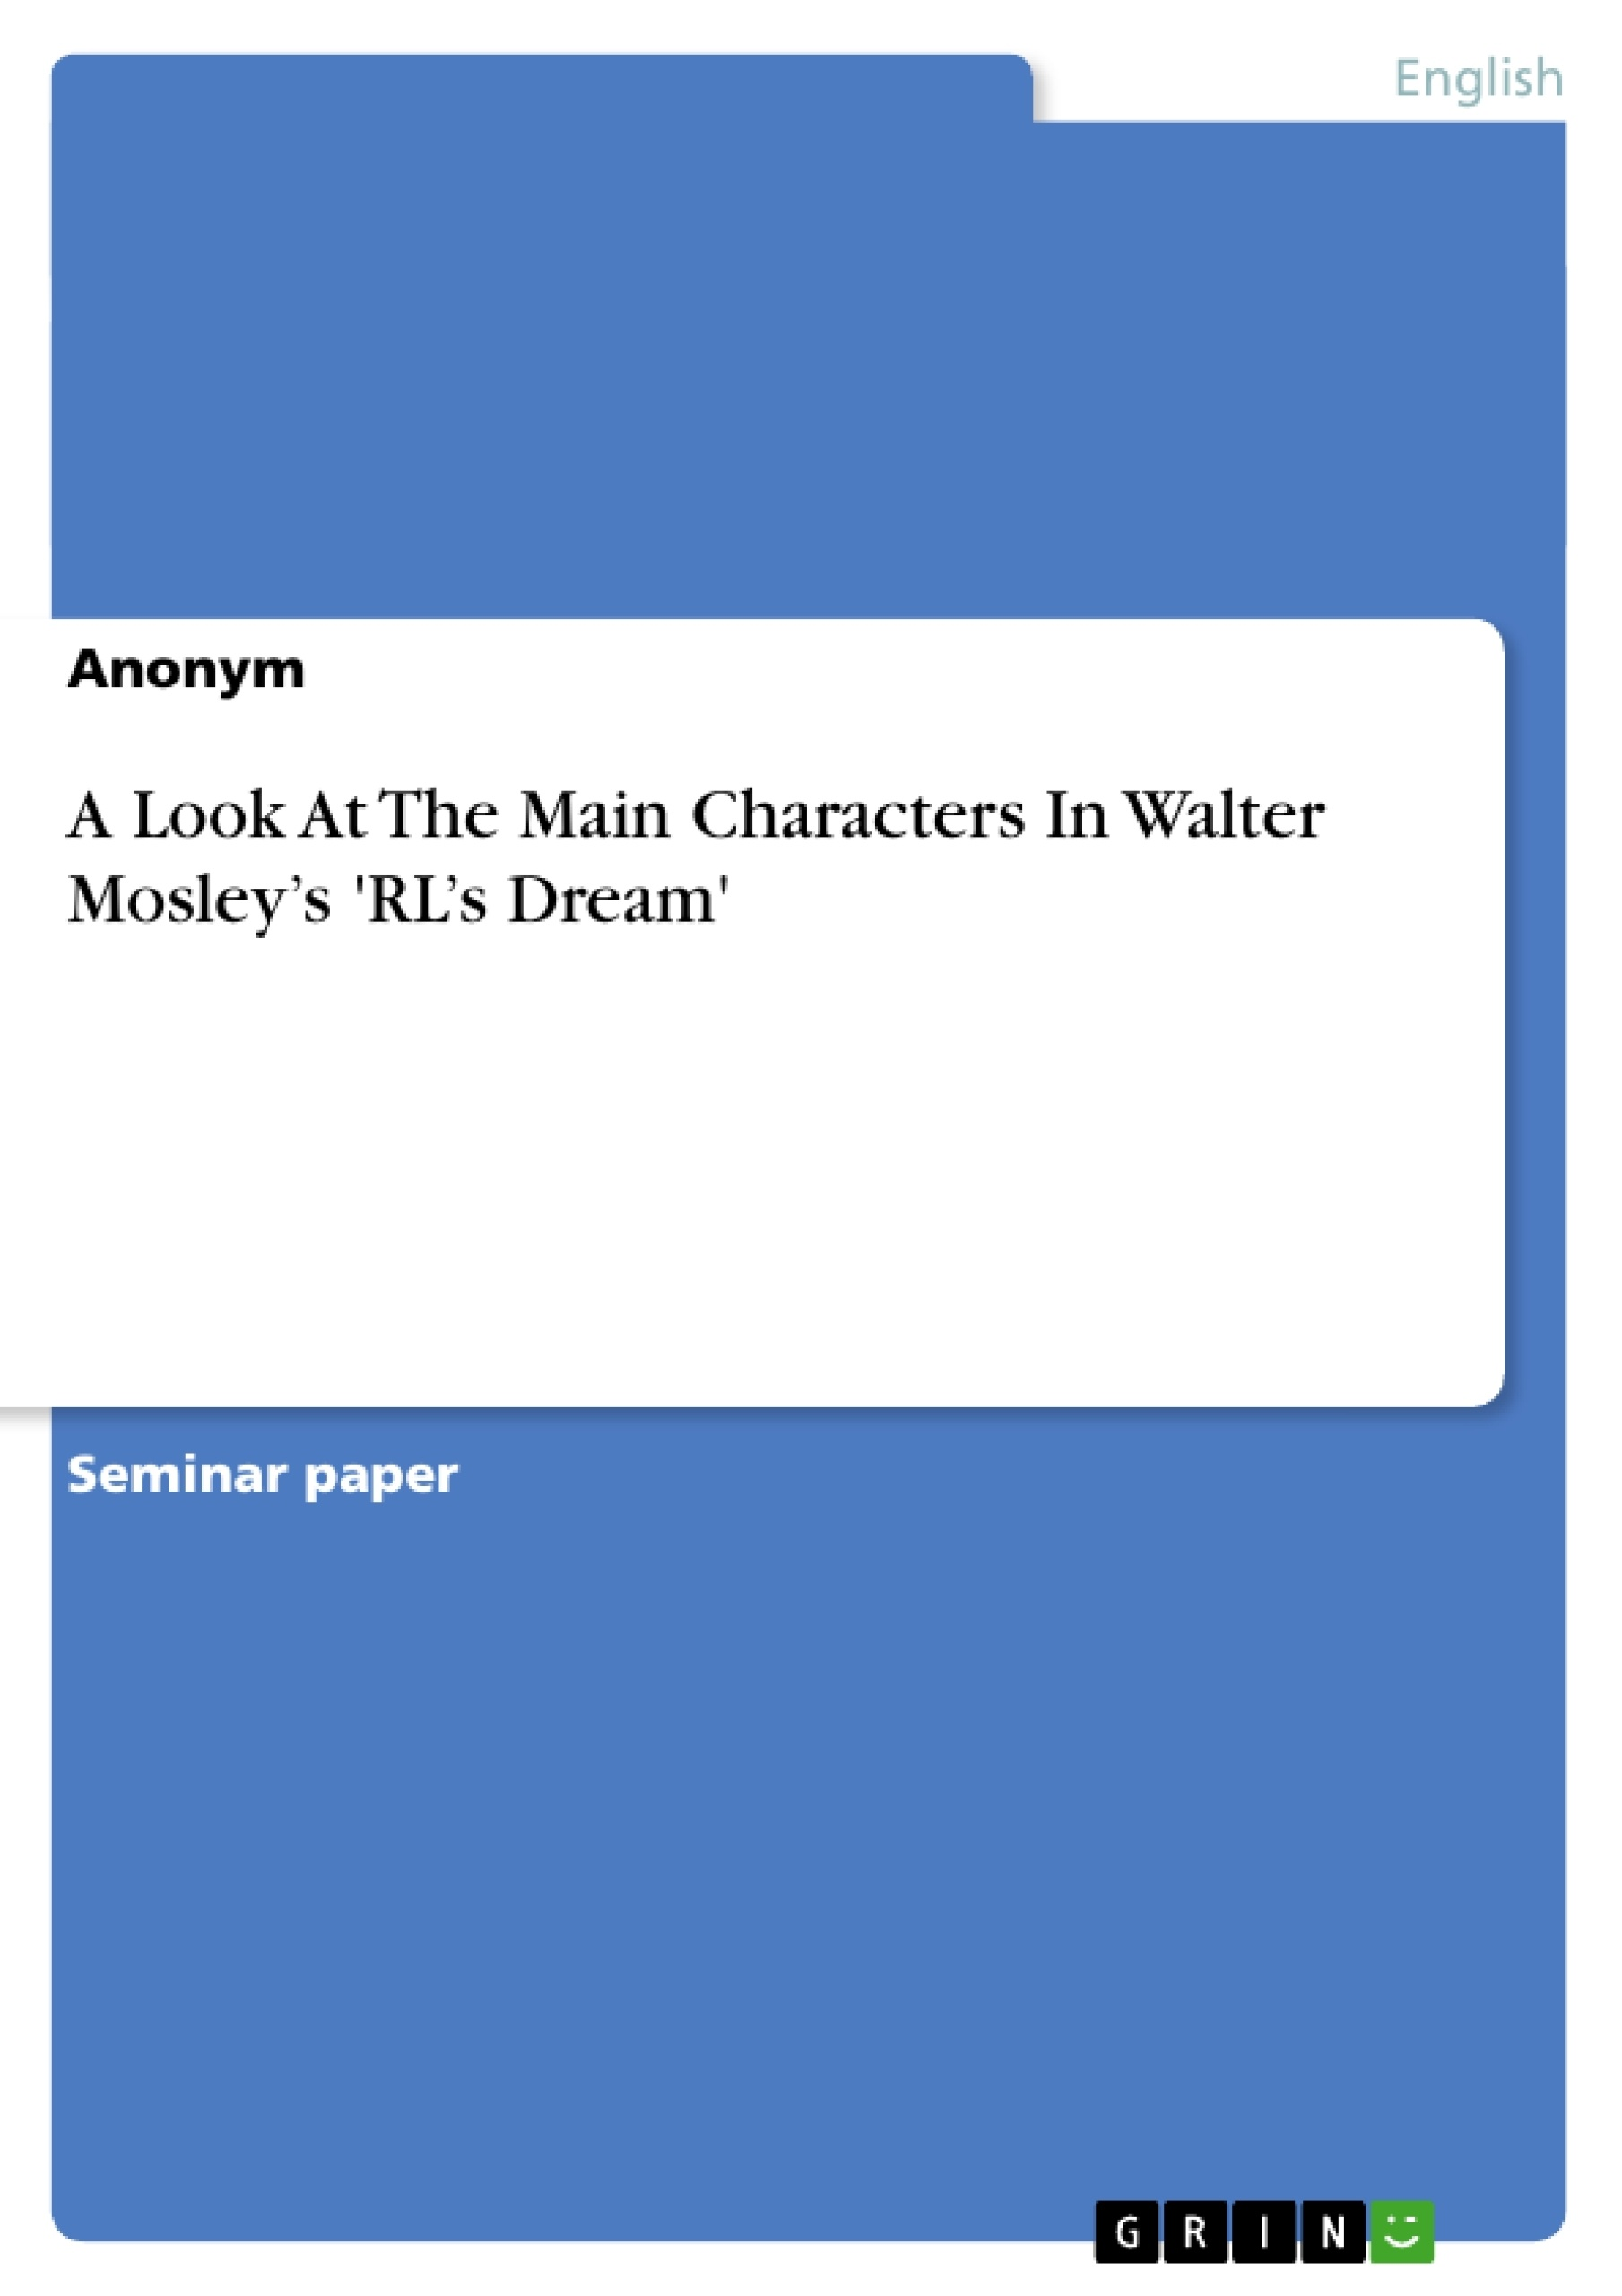 Title: A Look At The Main Characters In Walter Mosley's 'RL's Dream'